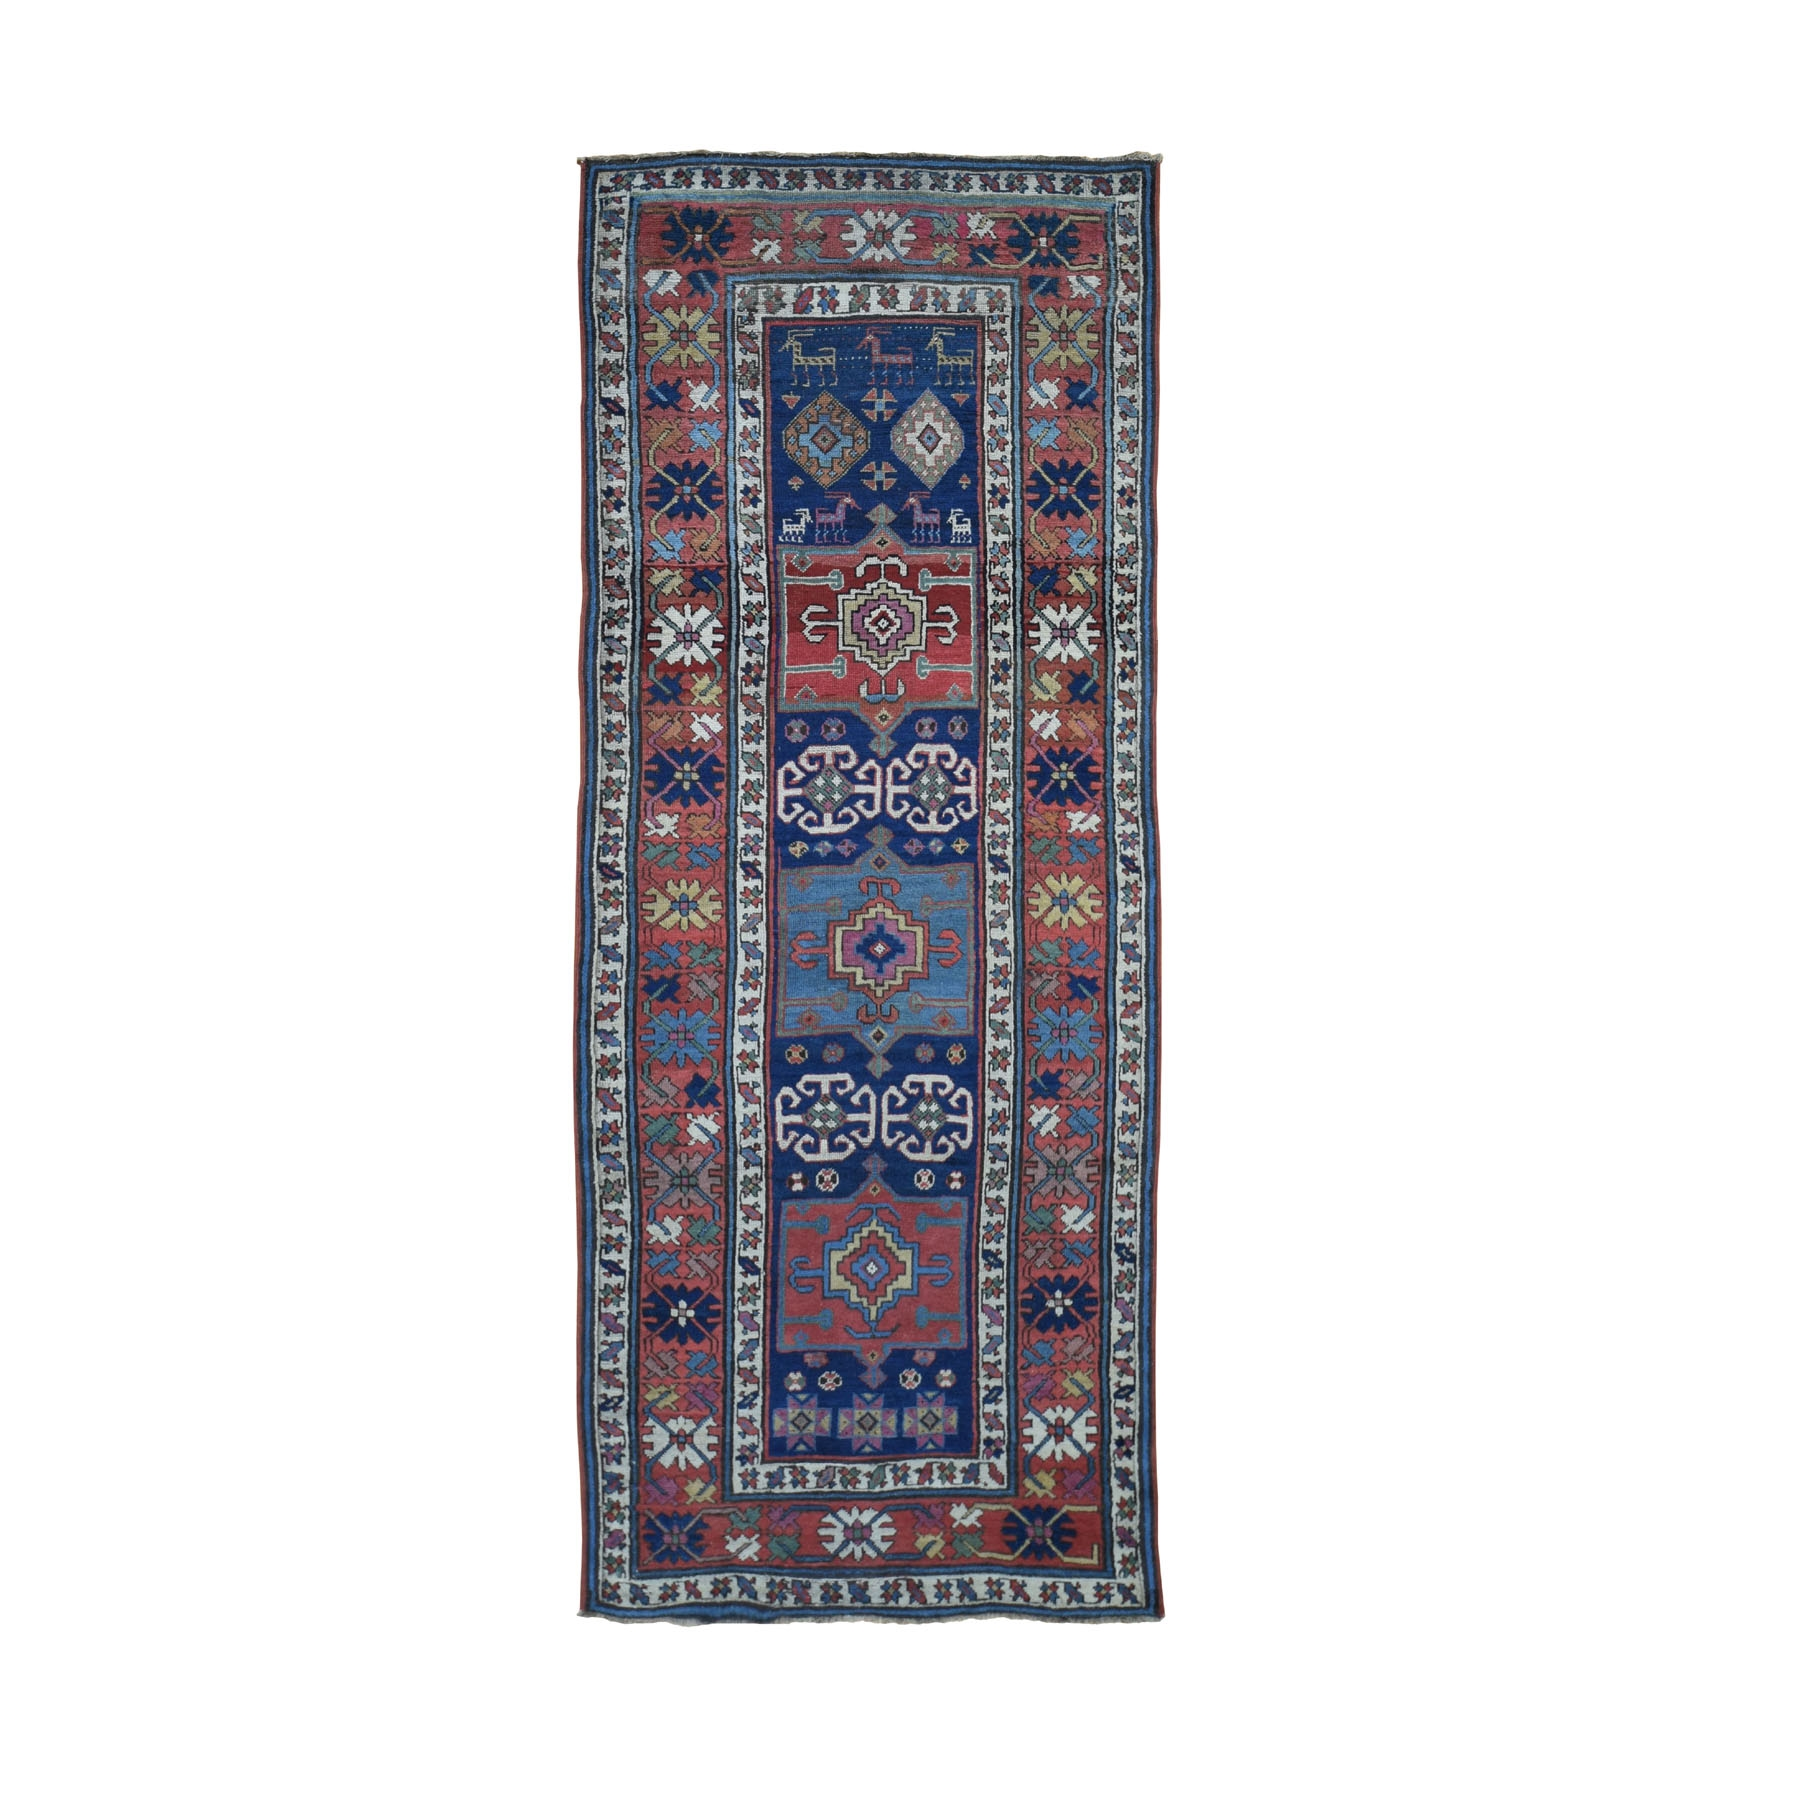 "3'6""x9' Antique Caucasian Kazak With Eggplant Color Exc Conition Wide Runner Hand Woven Oriental Rug"